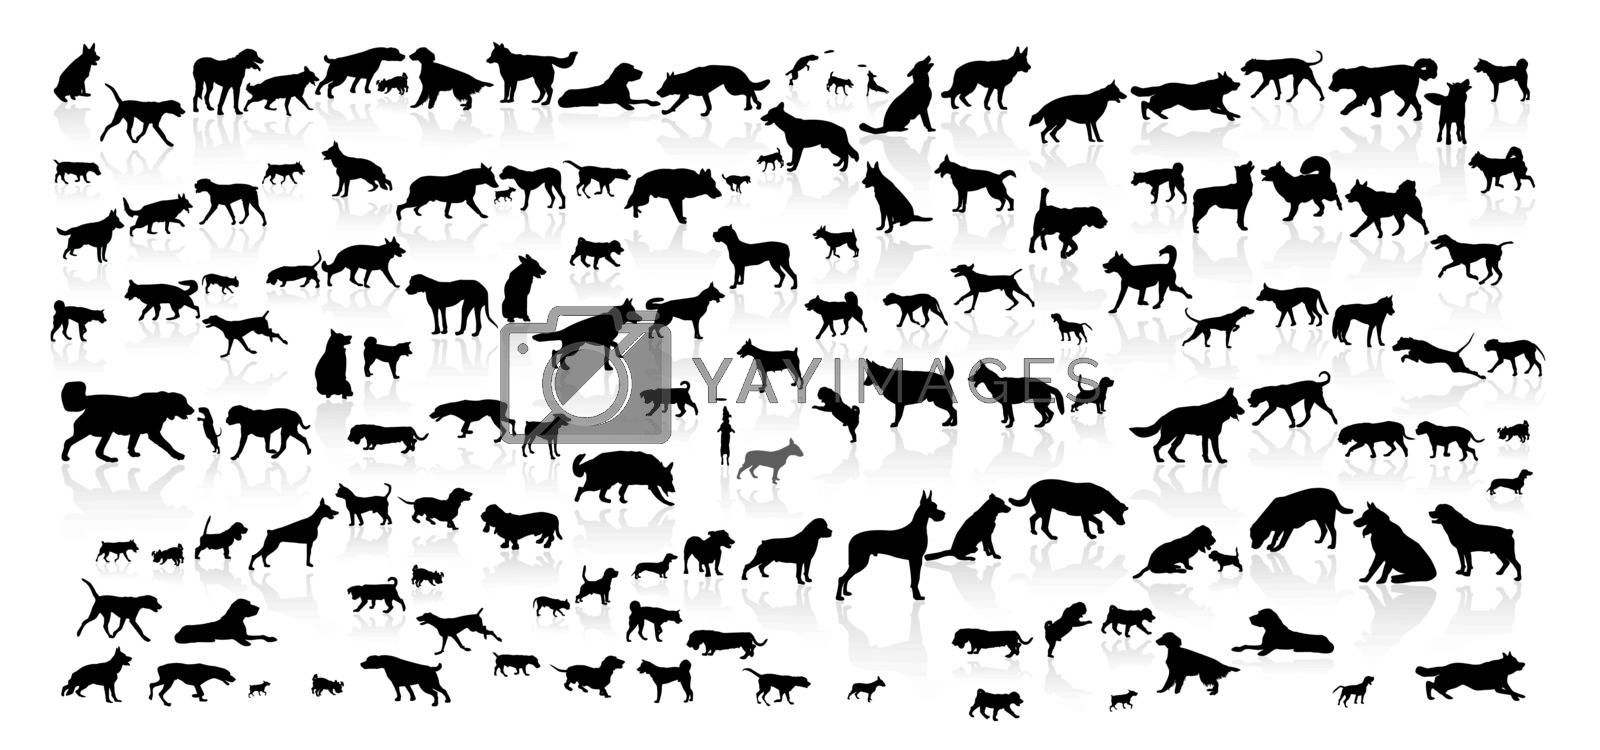 Silhouettes of dogs on a white background. Collection of dogs of various breeds.